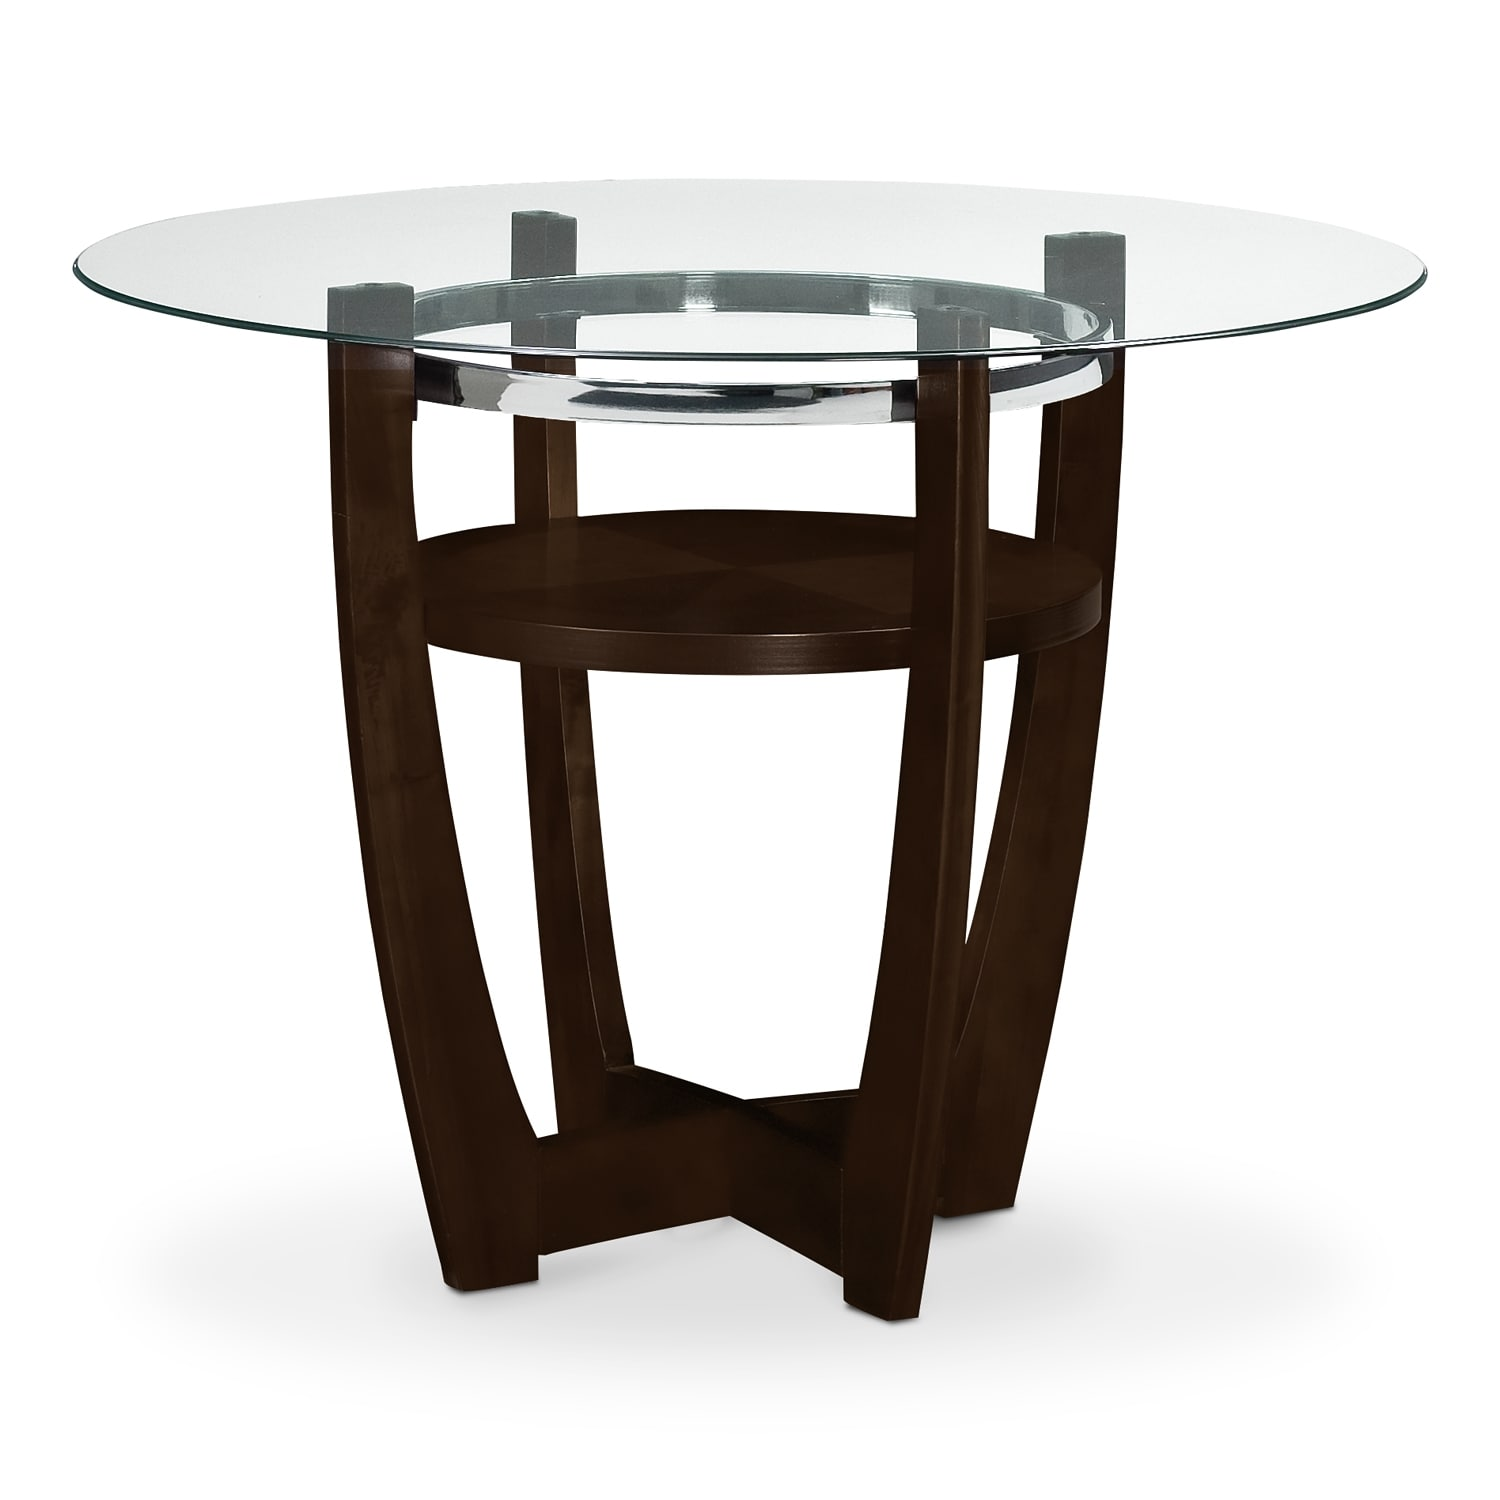 American Signature Furniture Alcove II Dining Room Counter Height Table